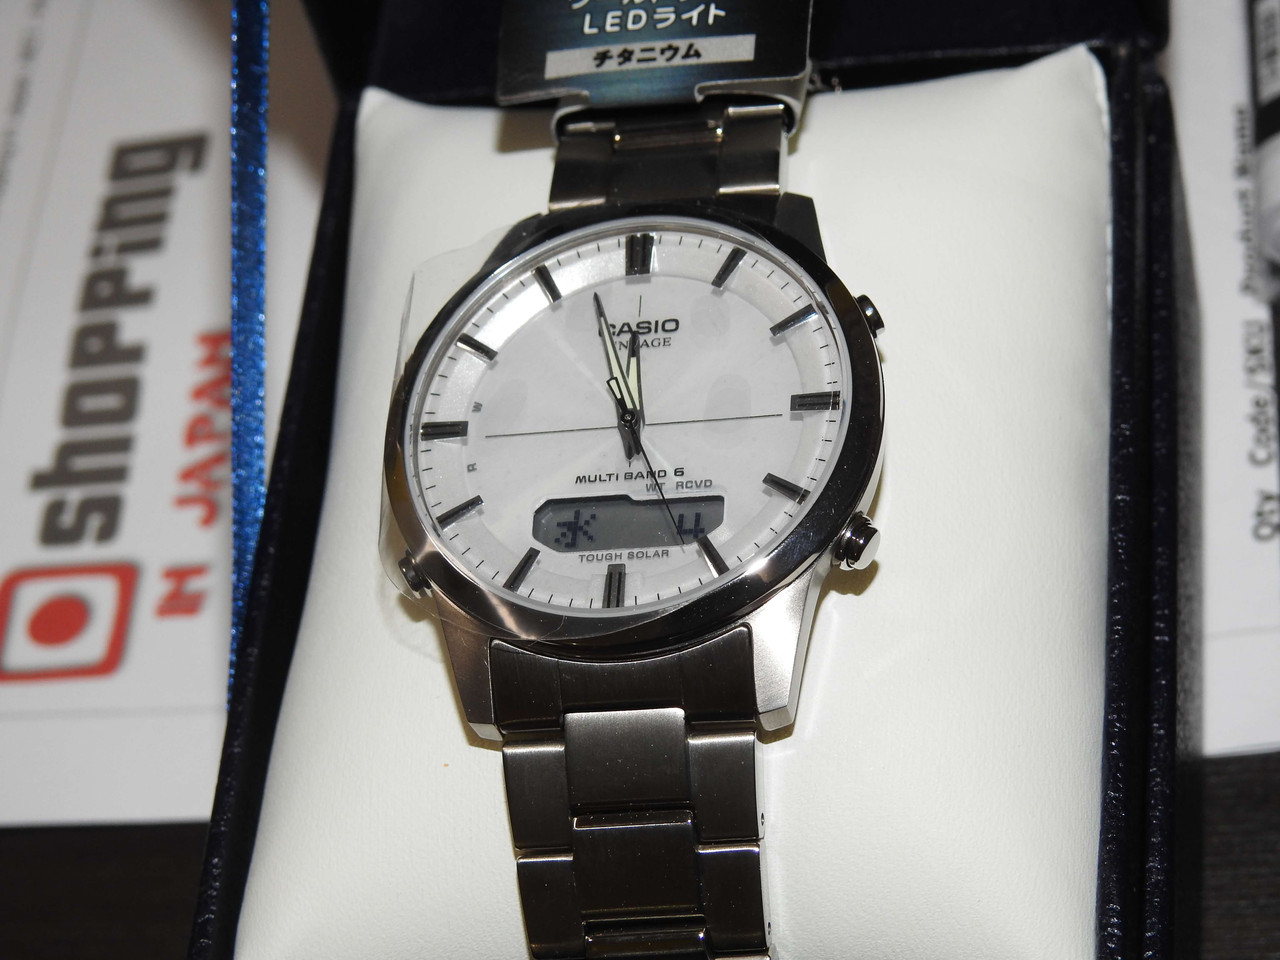 Casio Lineage LCW-M170TD-7AJF Multiband 6